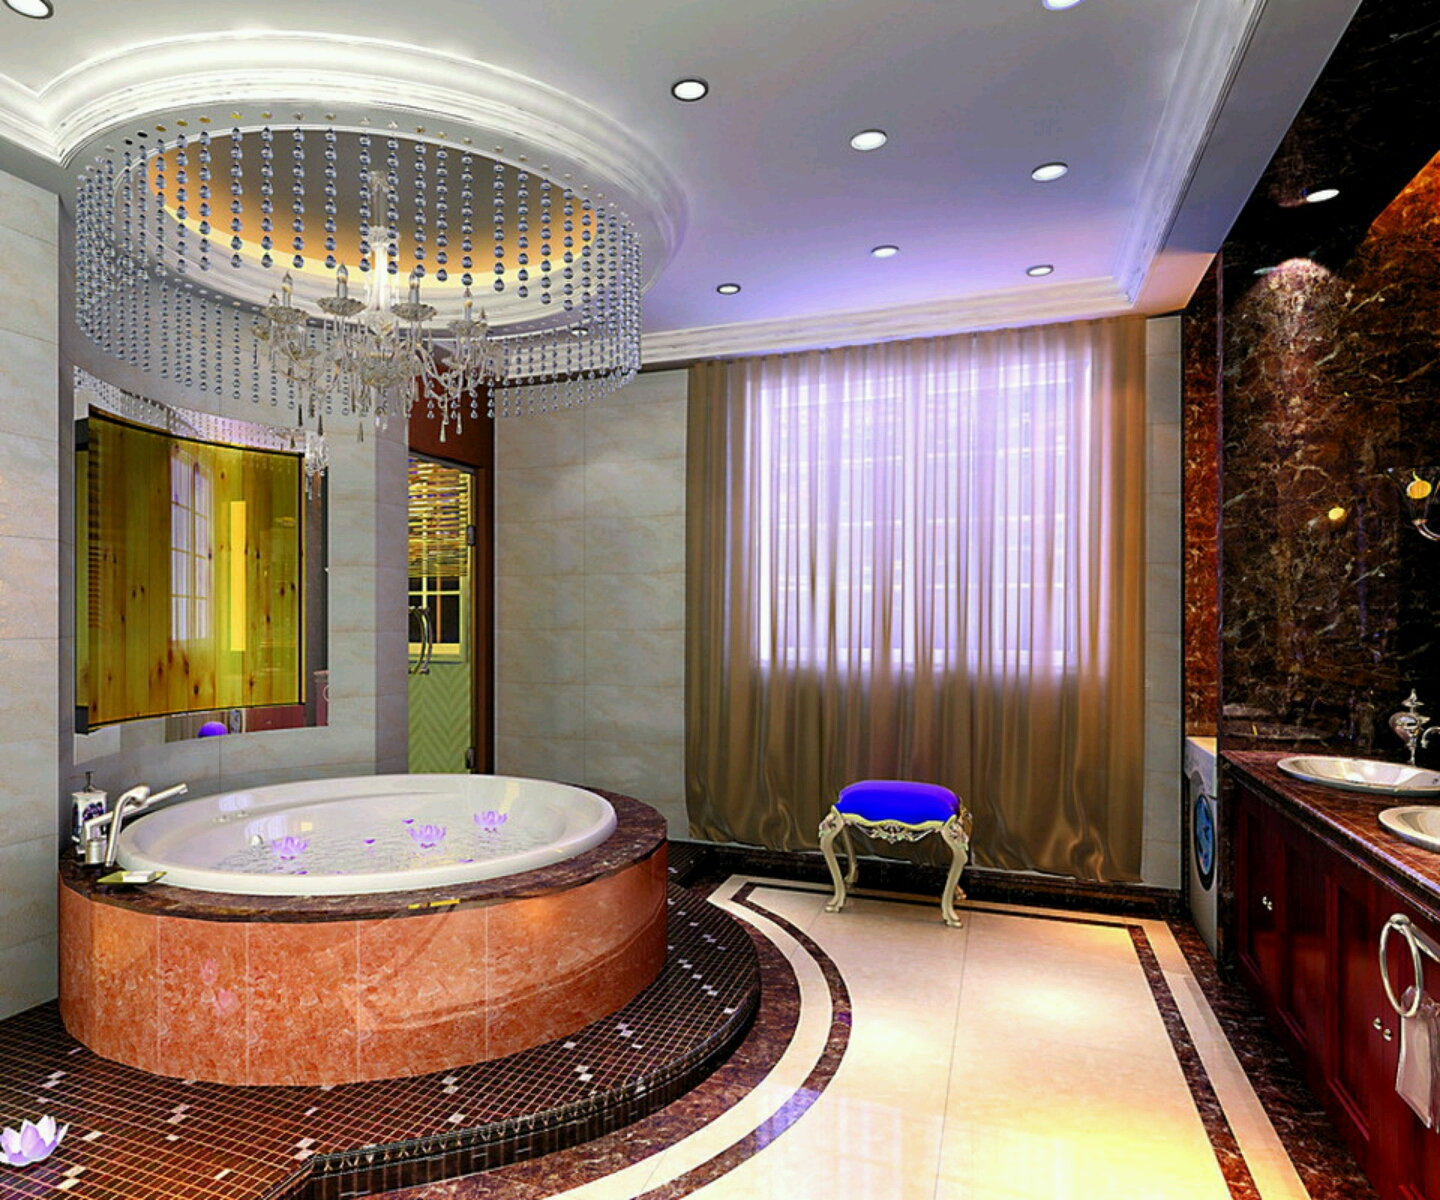 Luxury bathrooms designs ideas new home designs for Design of the bathroom